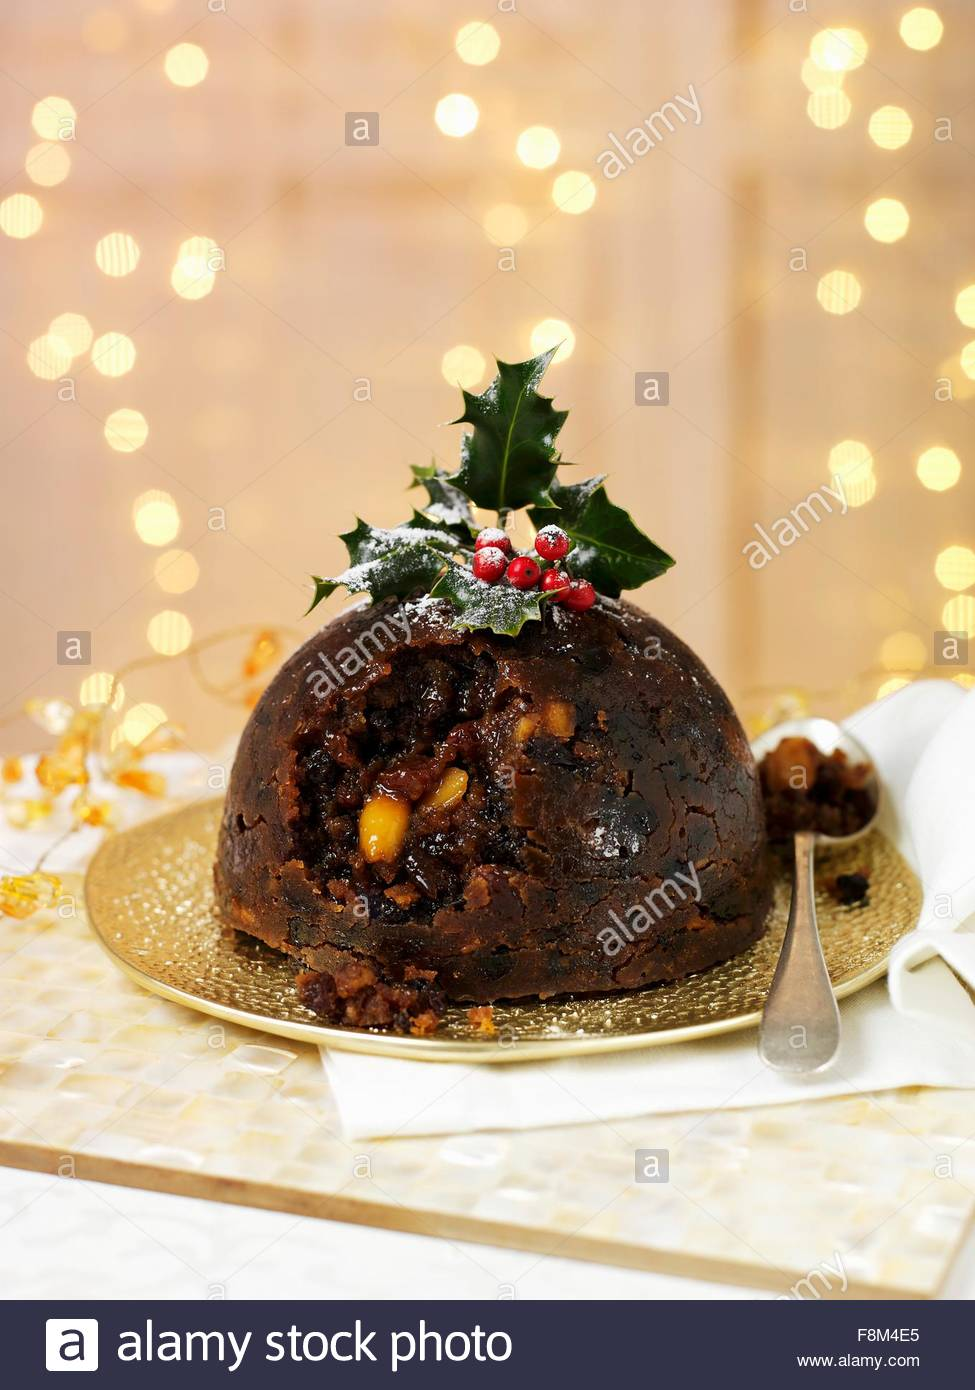 Christmas pudding with holly - Stock Image